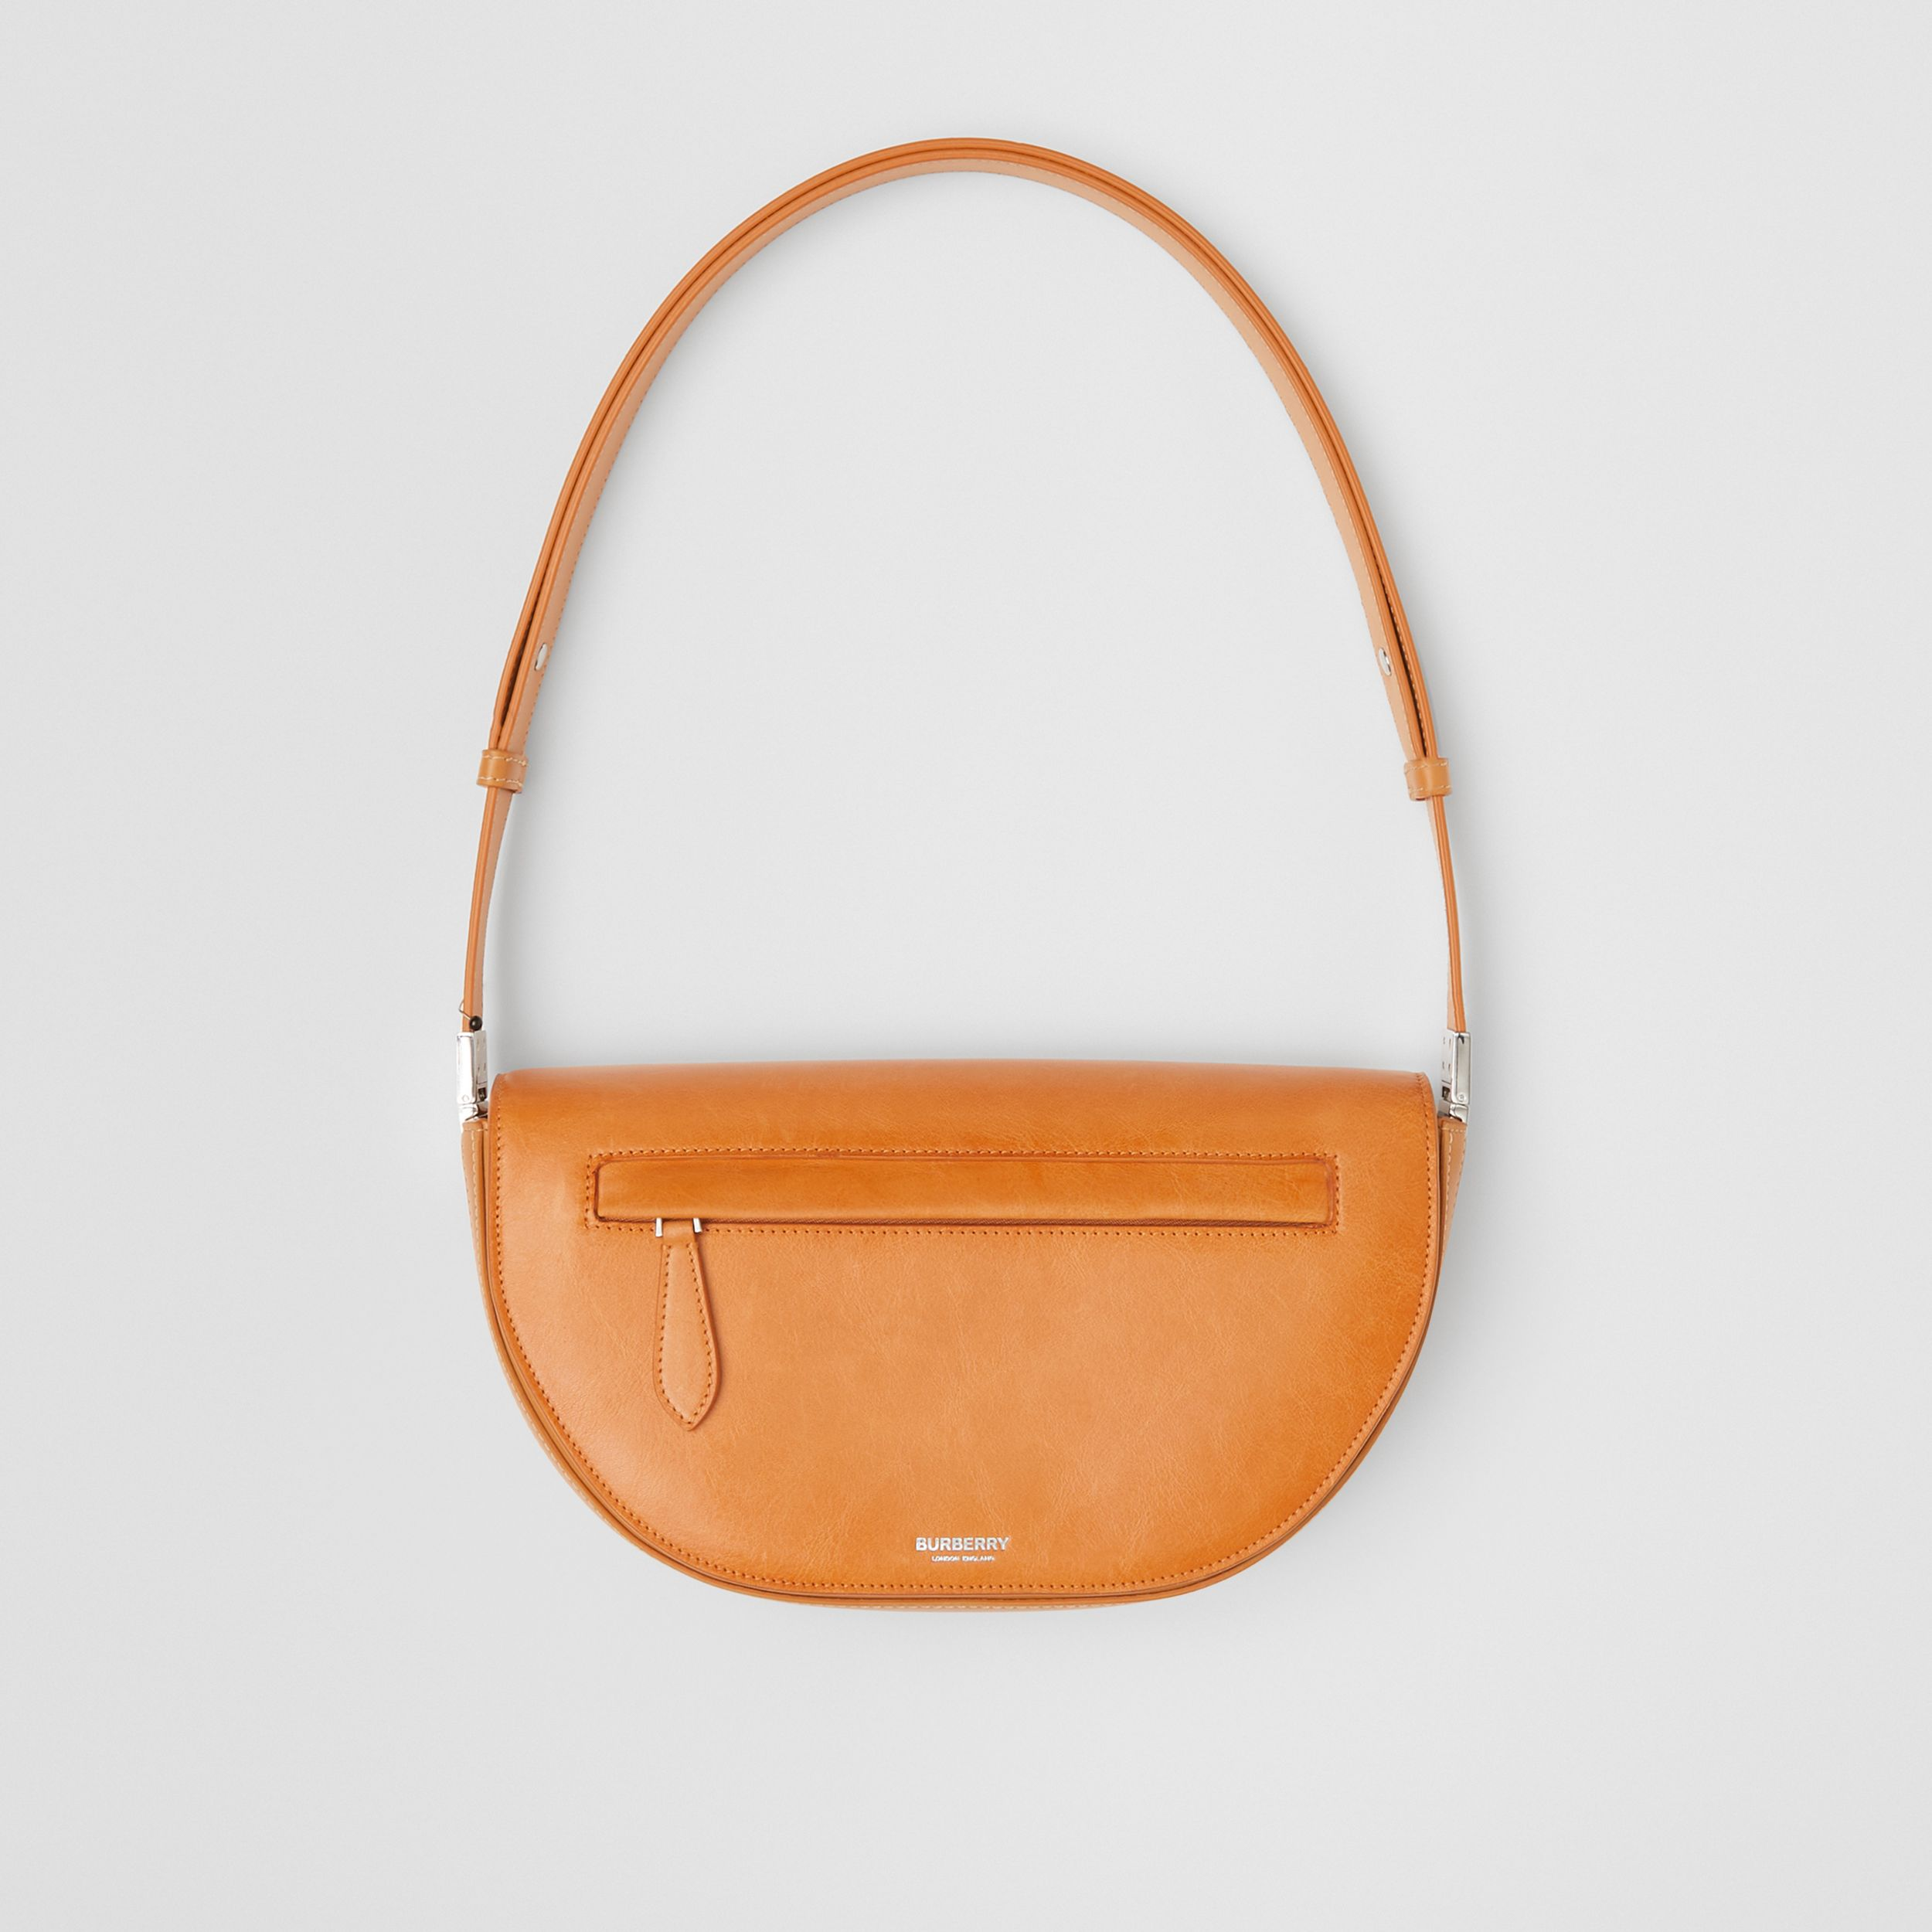 Small Leather Olympia Bag in Pale Orange - Women | Burberry - 1